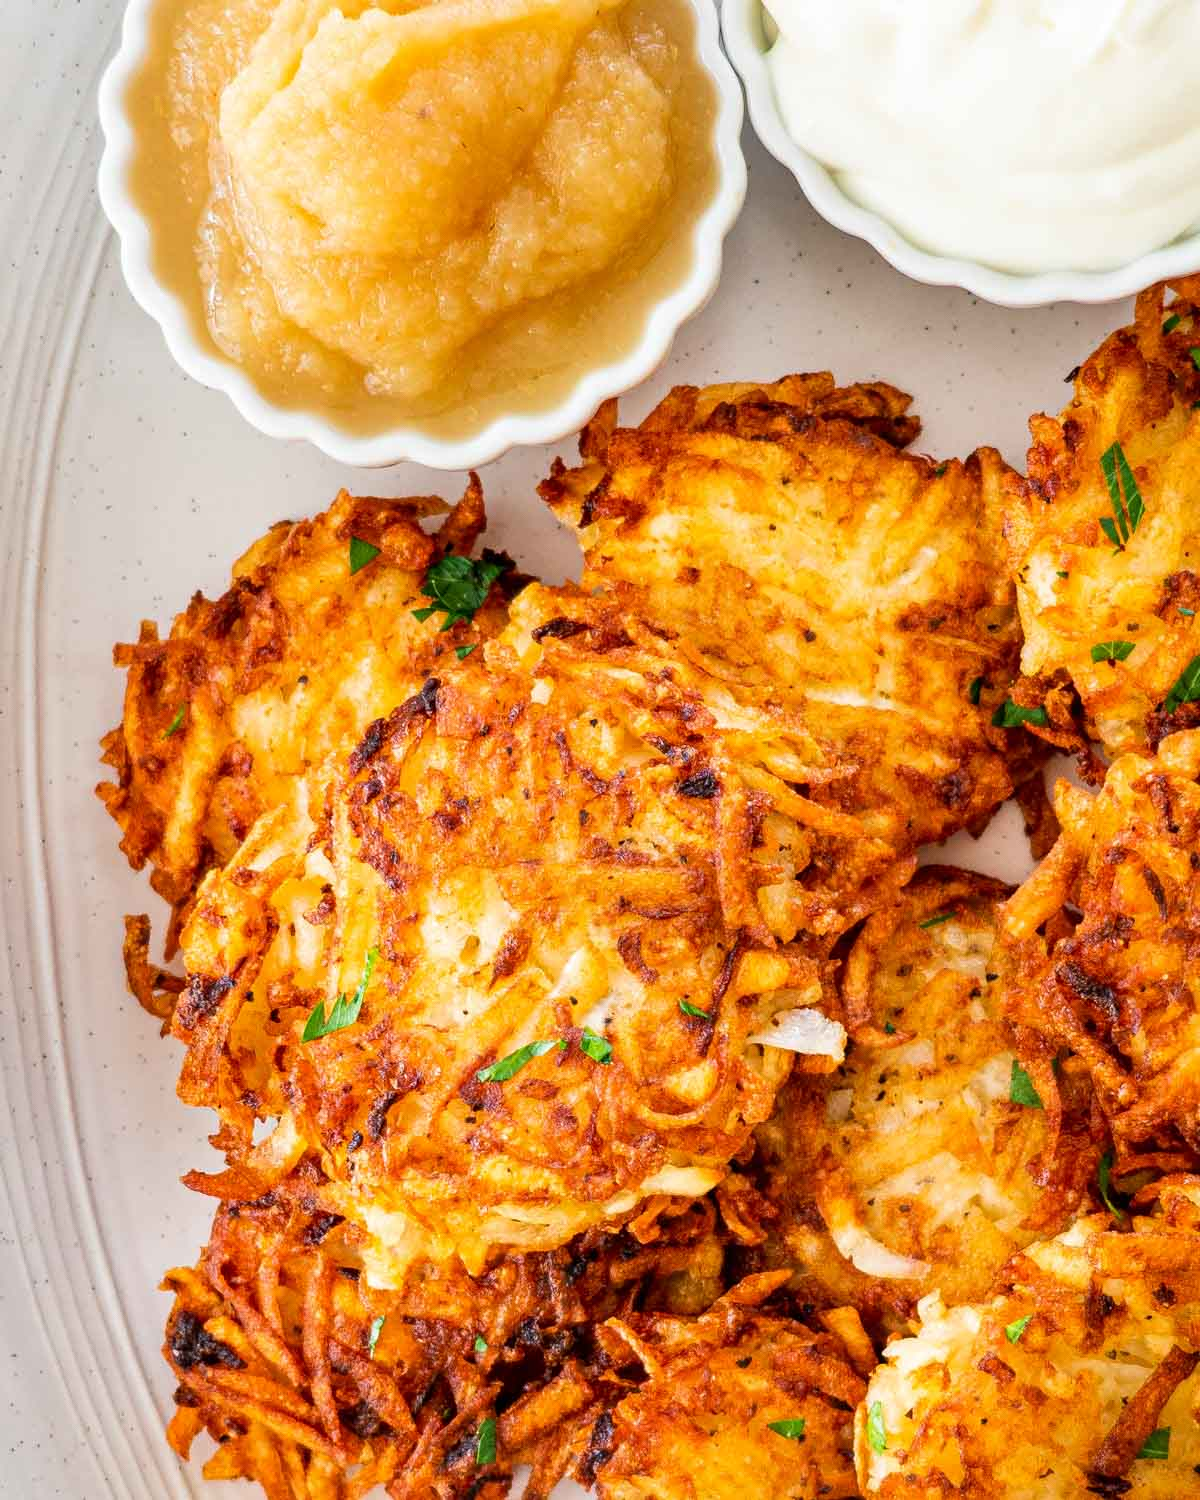 closeup shot of potato latkes on a serving platter with applesauce and sour cream